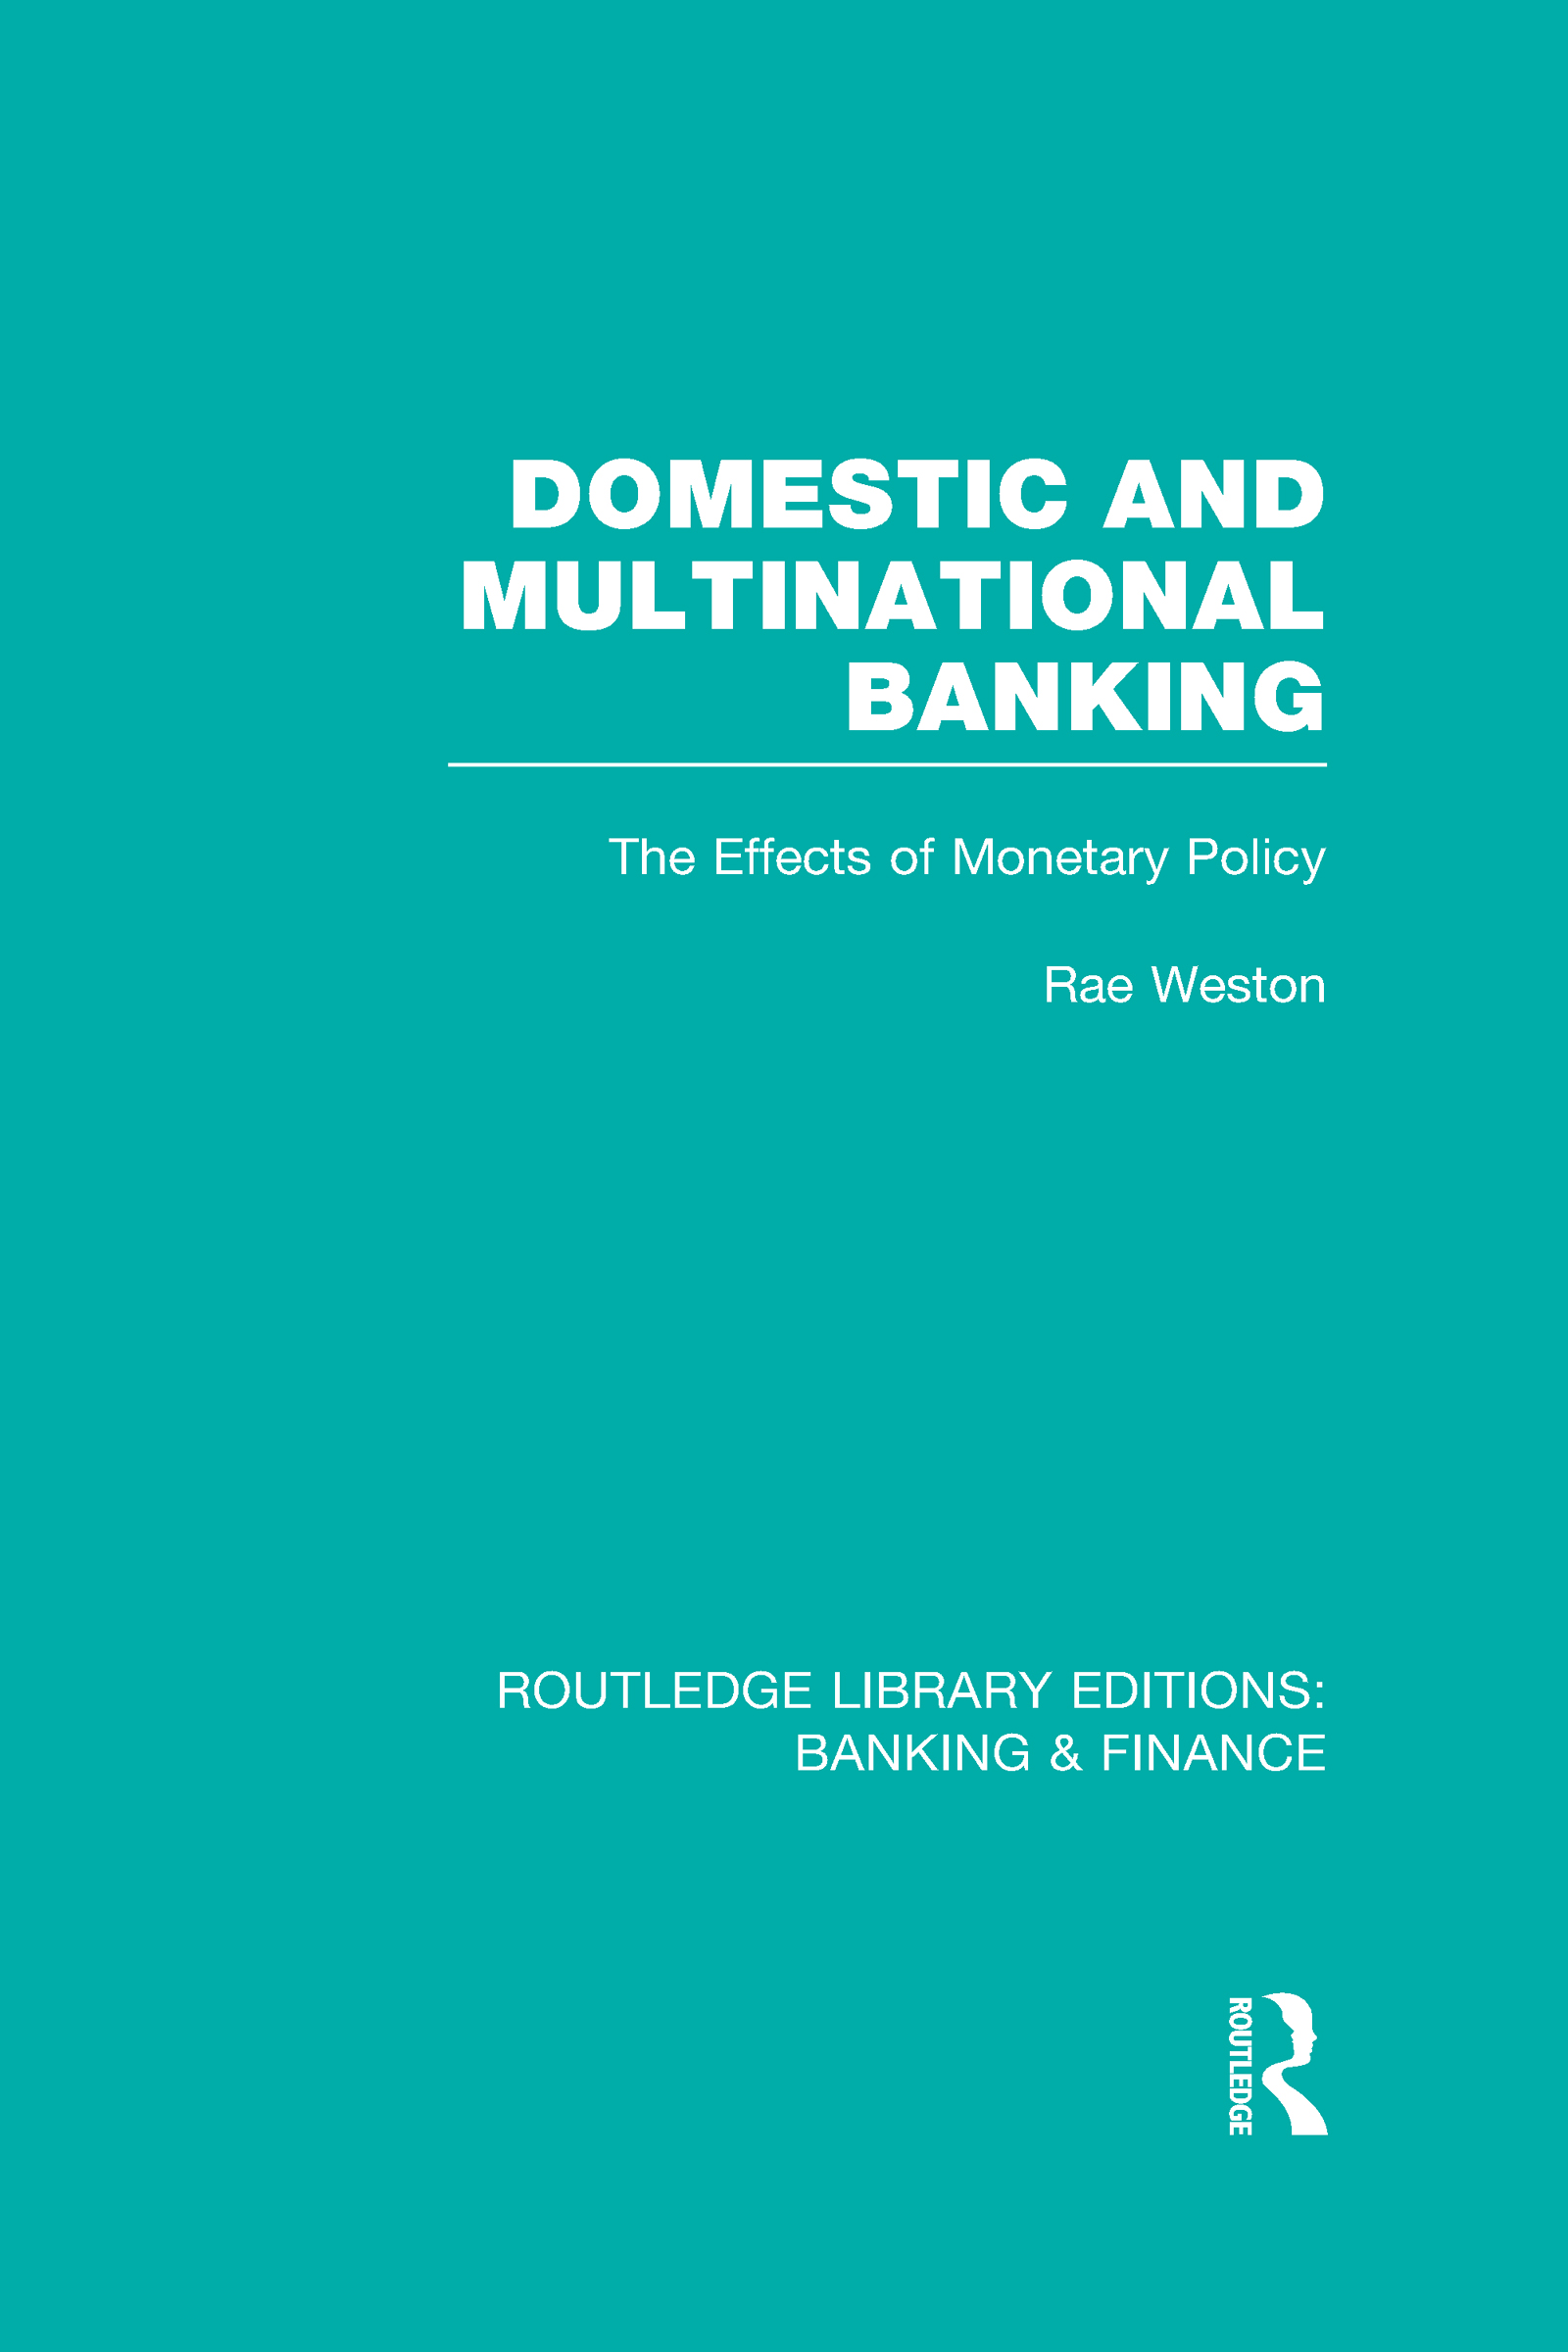 Domestic and Multinational Banking (RLE Banking & Finance): The Effects of Monetary Policy (Hardback) book cover